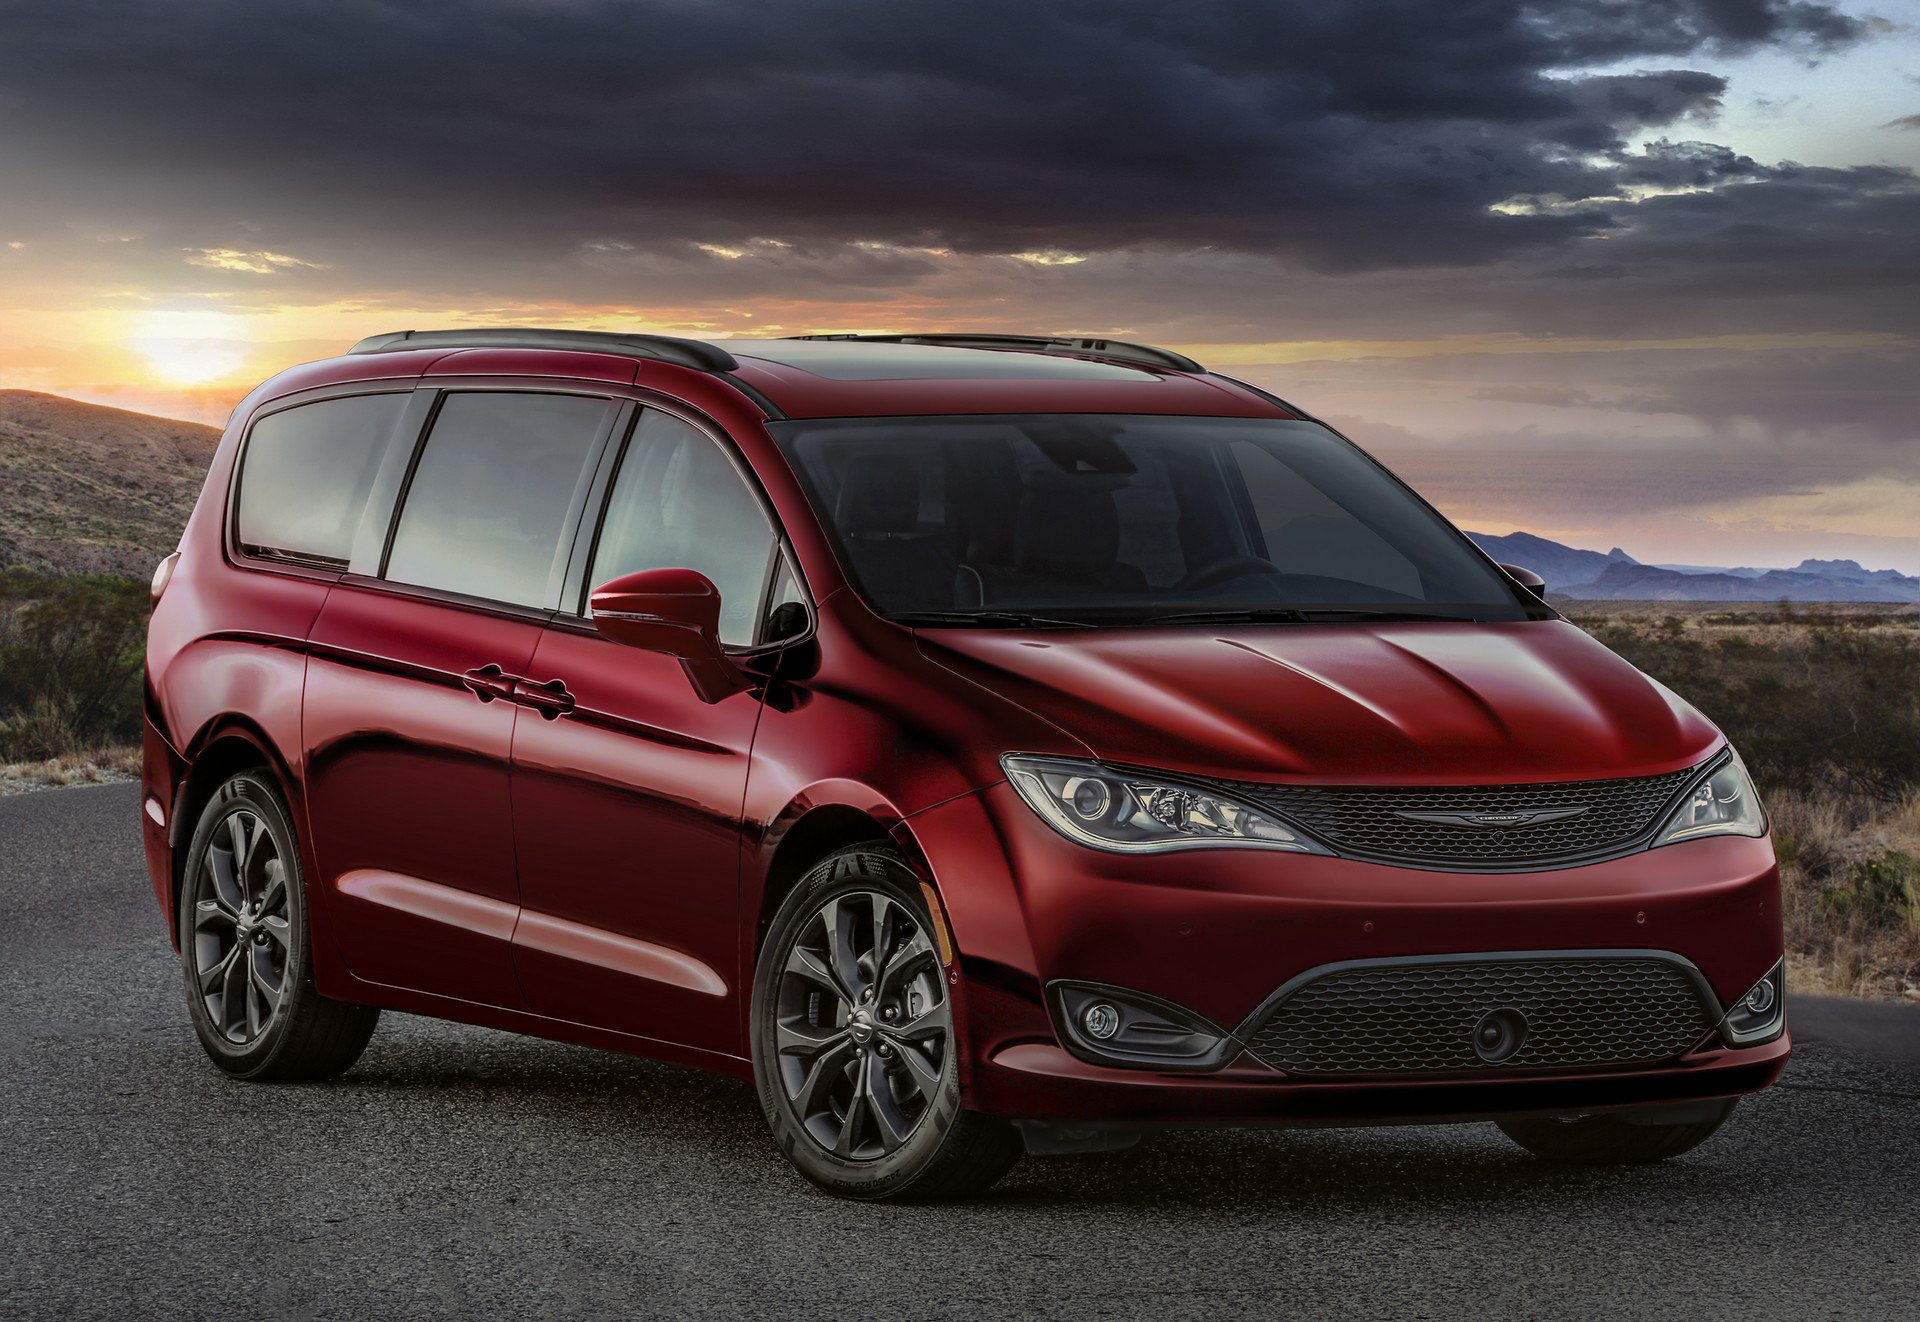 394dc5b7-chrysler-pacifica-35th-anniversary-edition-1